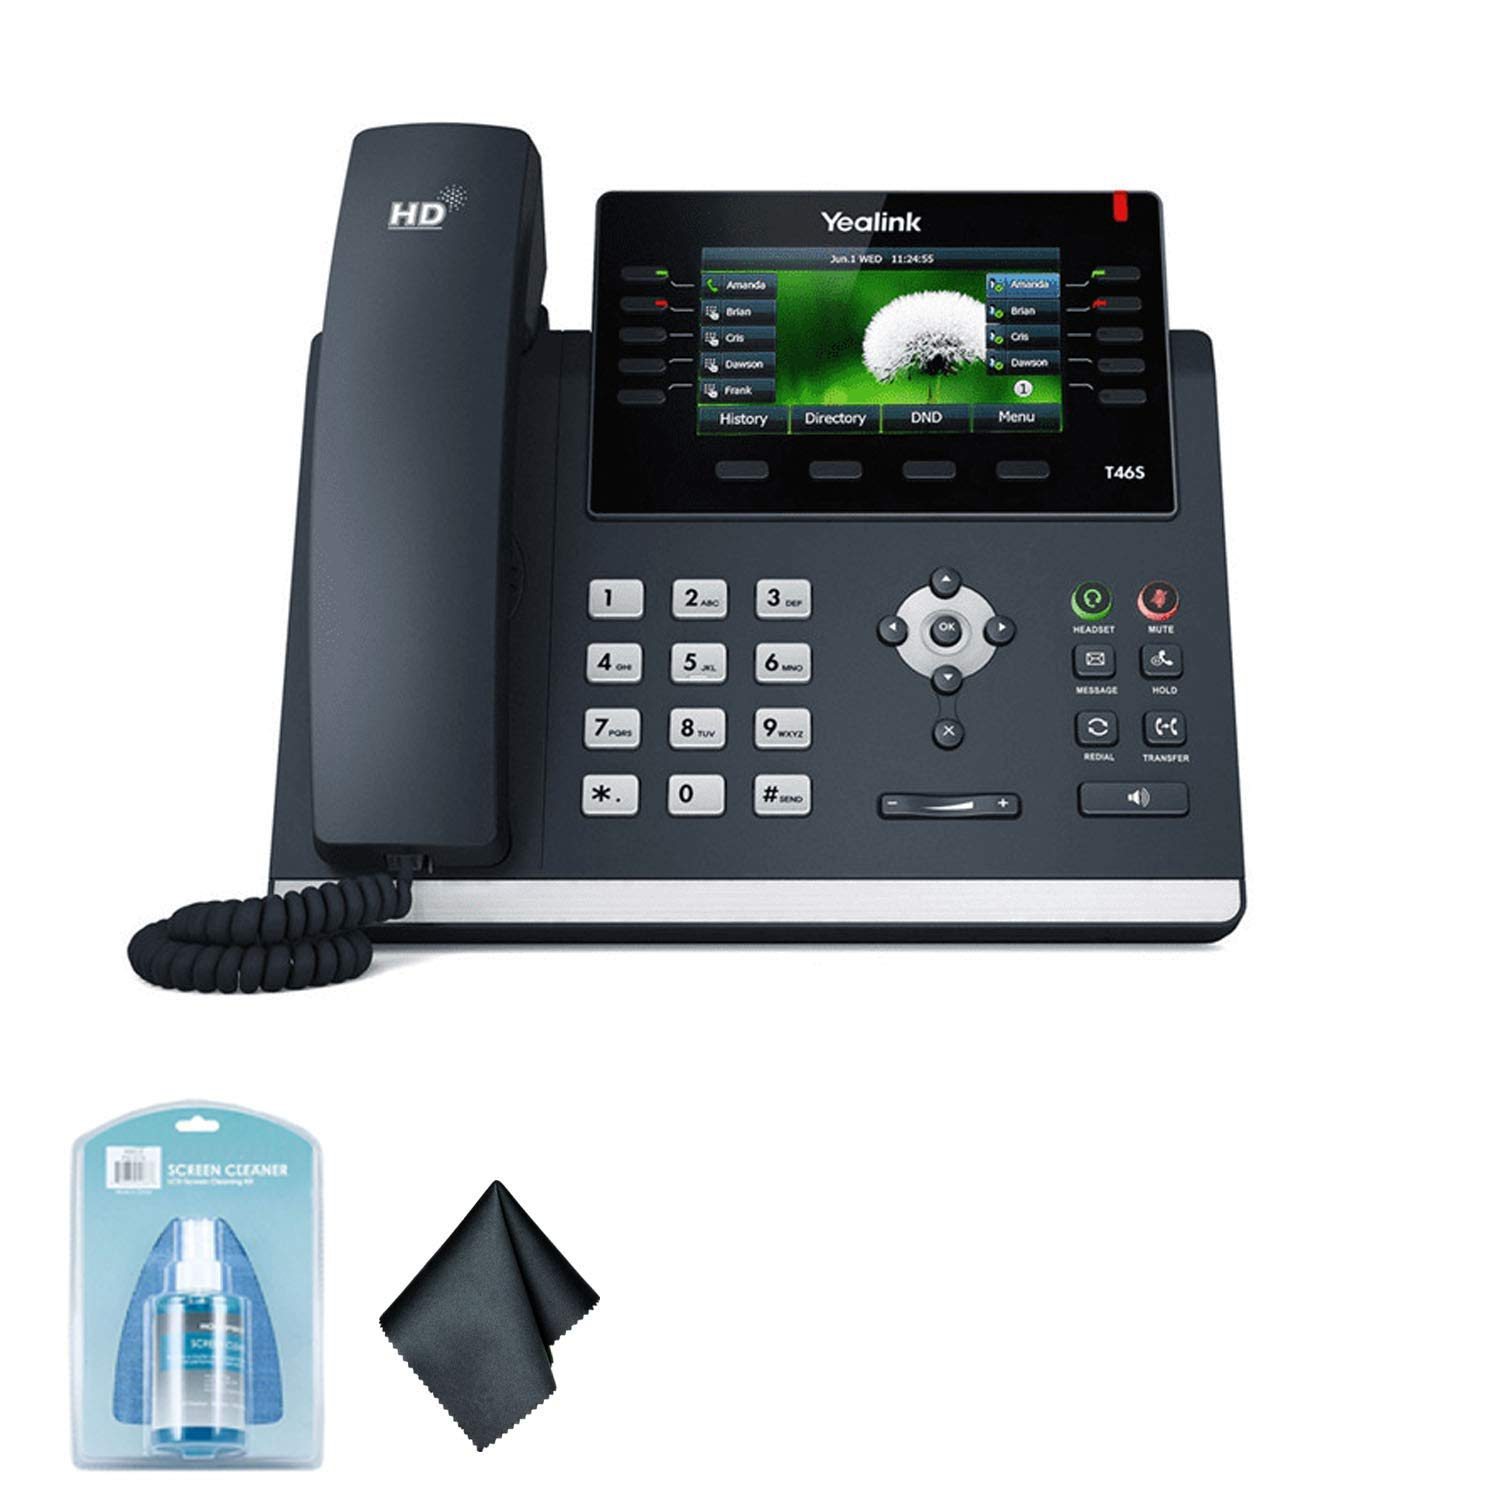 Yealink SIP-T46S IP Office Desk Phone | 4.3-Inch Color Display| Dual-Port Gigabit Ethernet | 802.3af PoE | Power Adapter Not Included -6AVE Bundle by Yealink